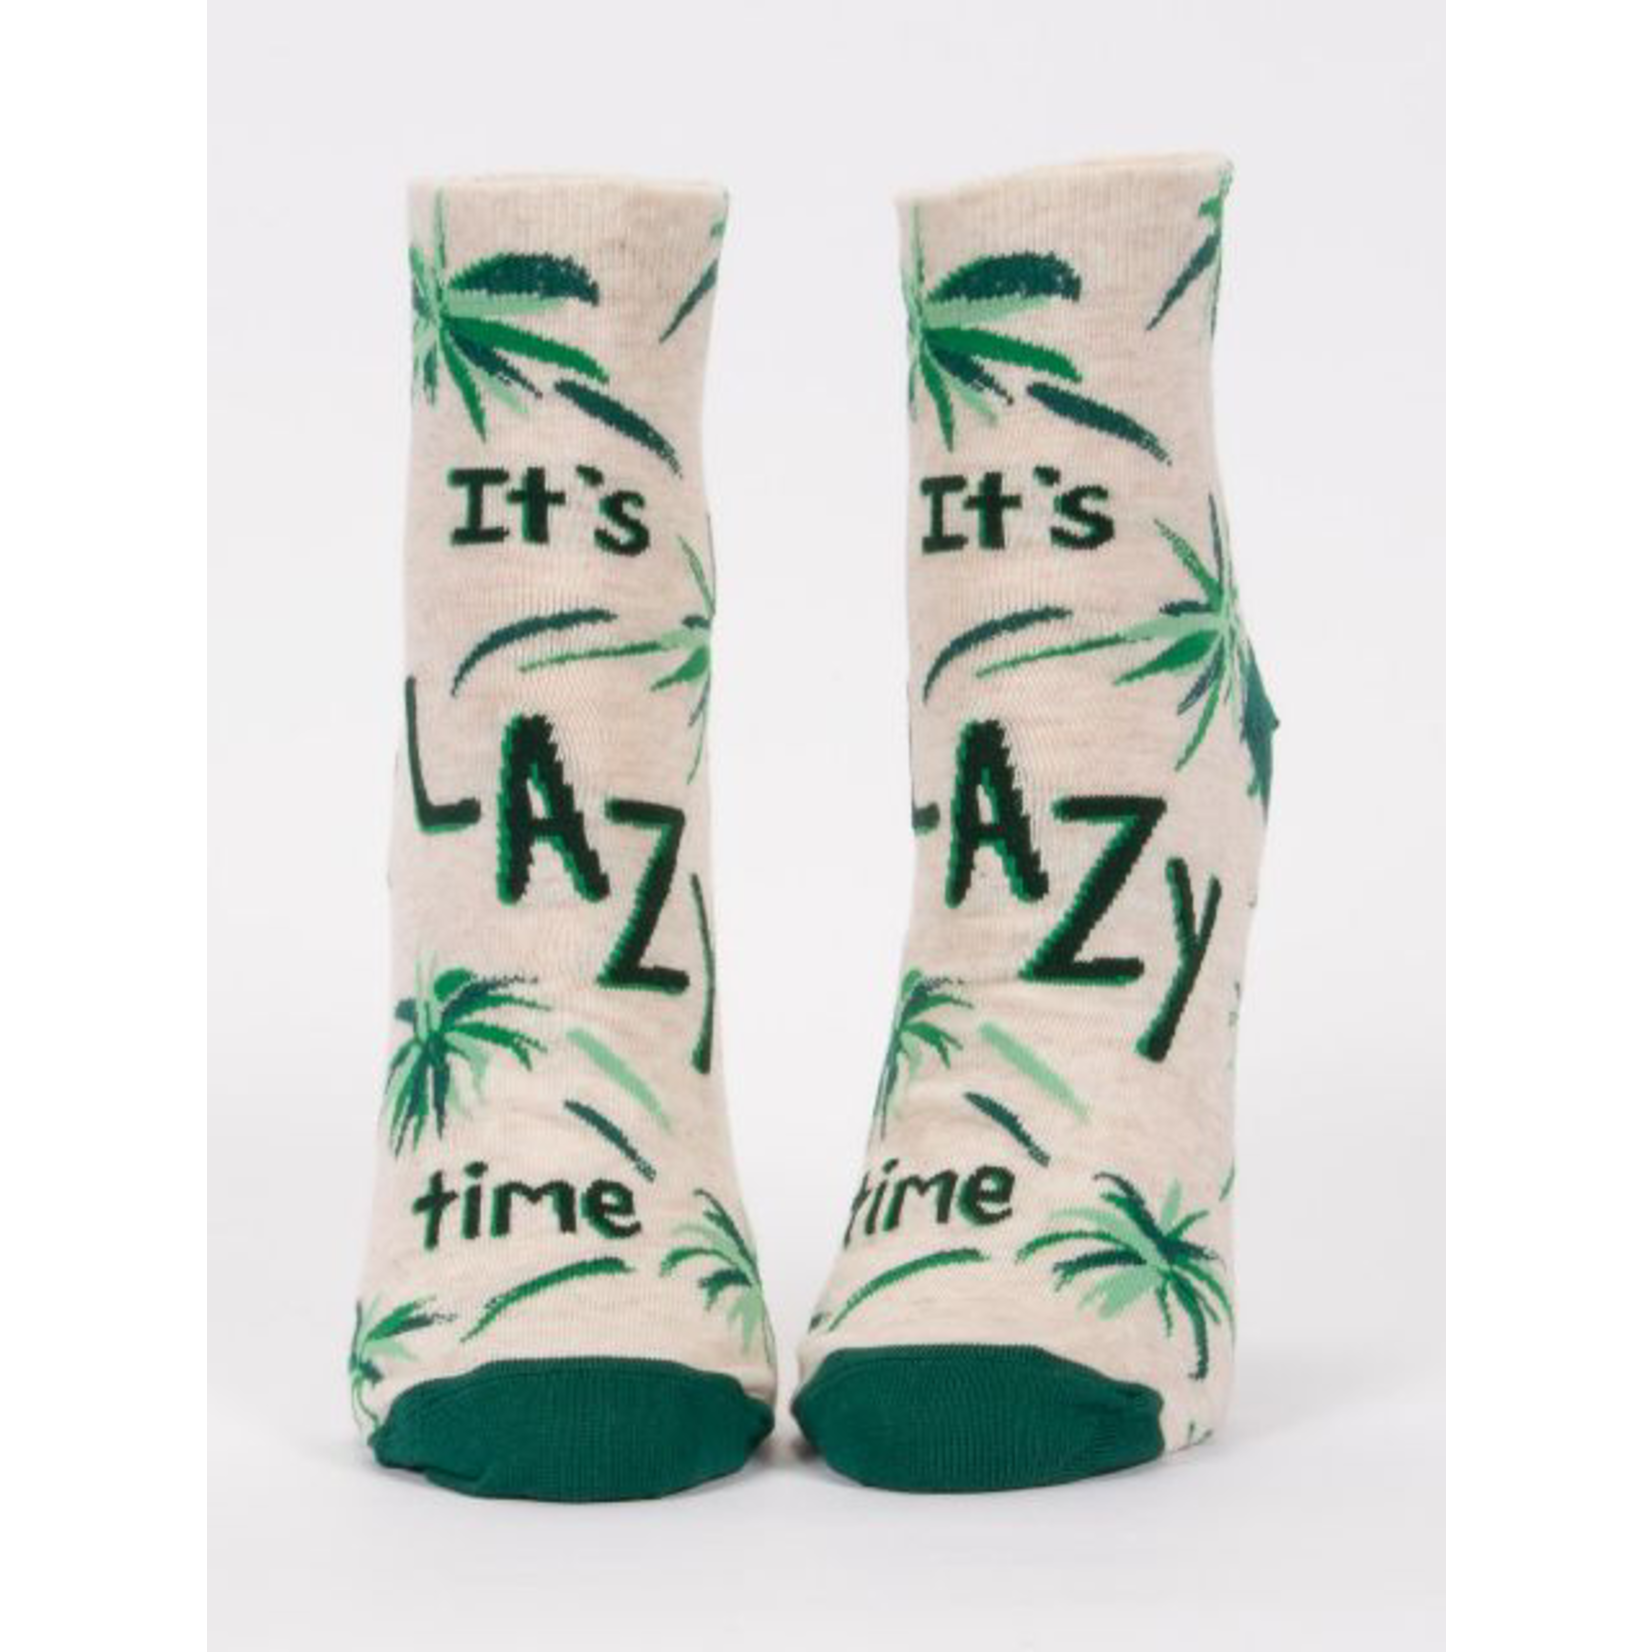 Socks (Womens) (Ankle)  - Its Lazy Time